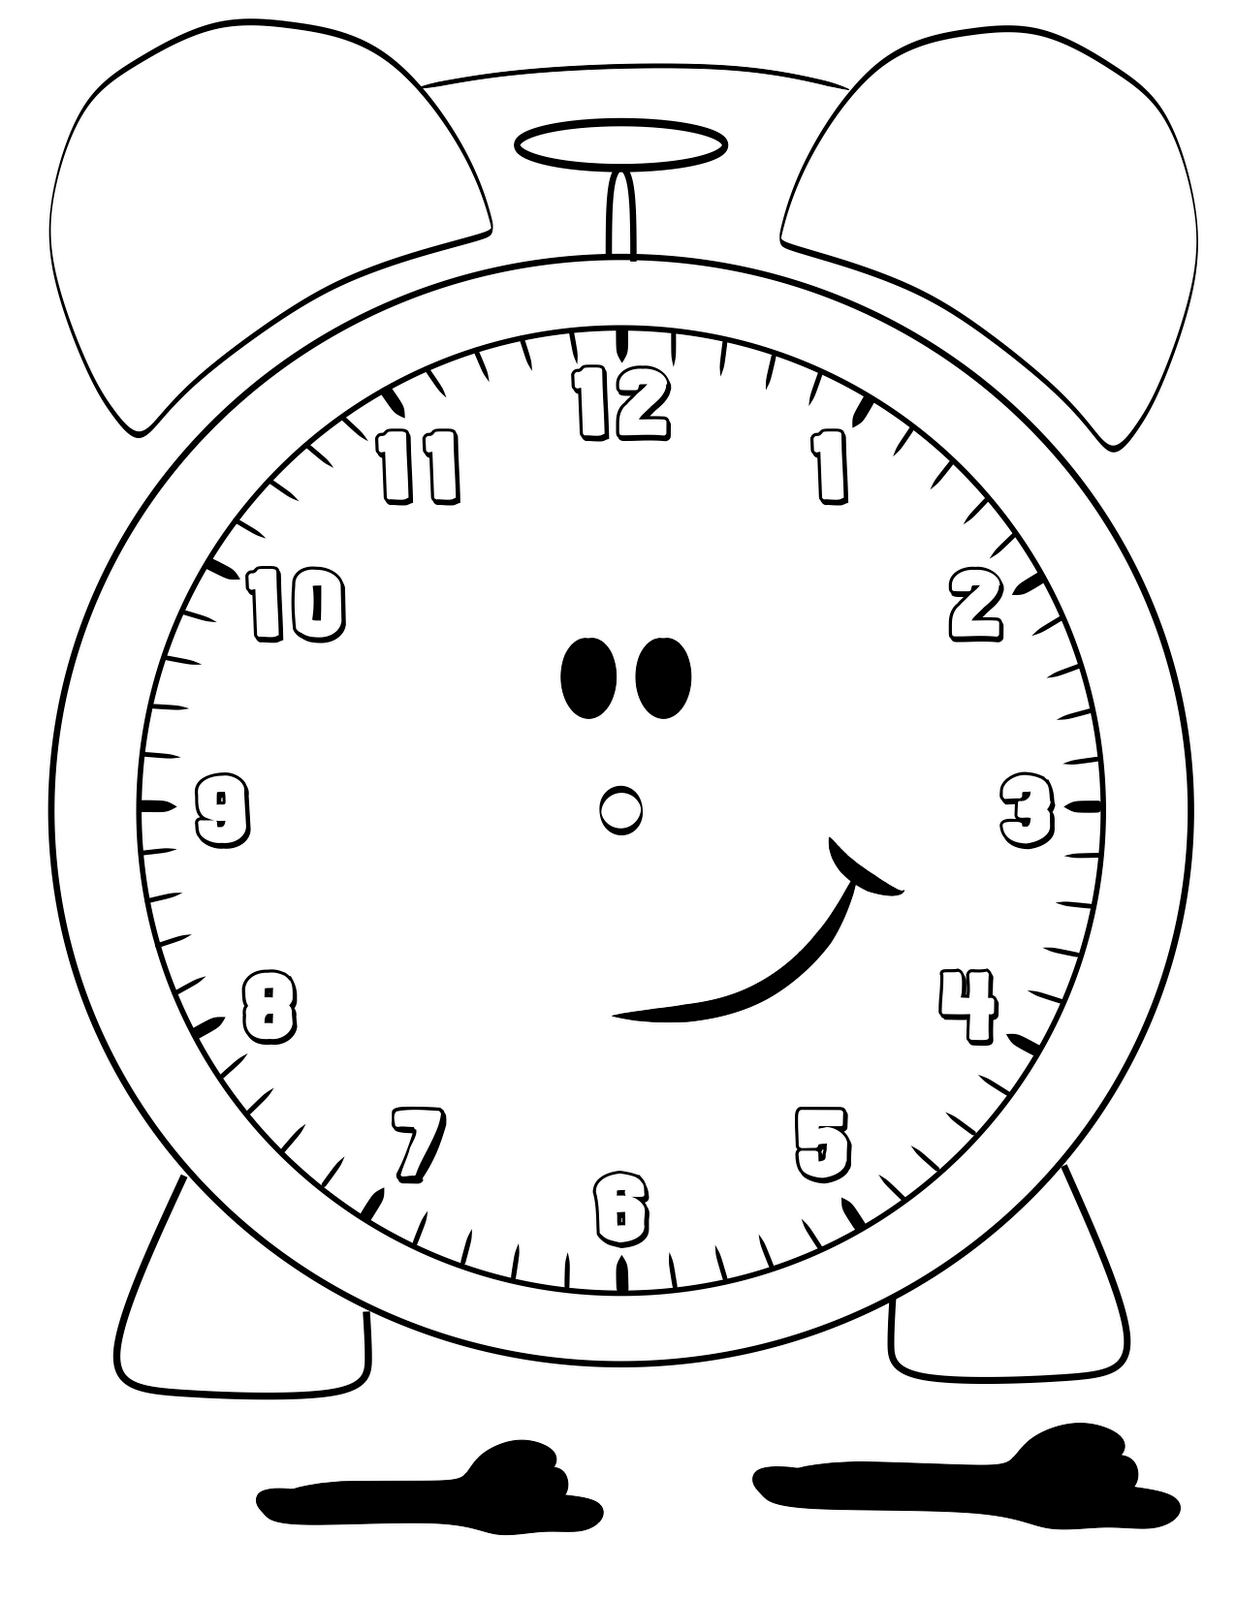 coloring pages blank kid kindergarten | Free Printable Clock Coloring Pages For Kids | Időmérés ...